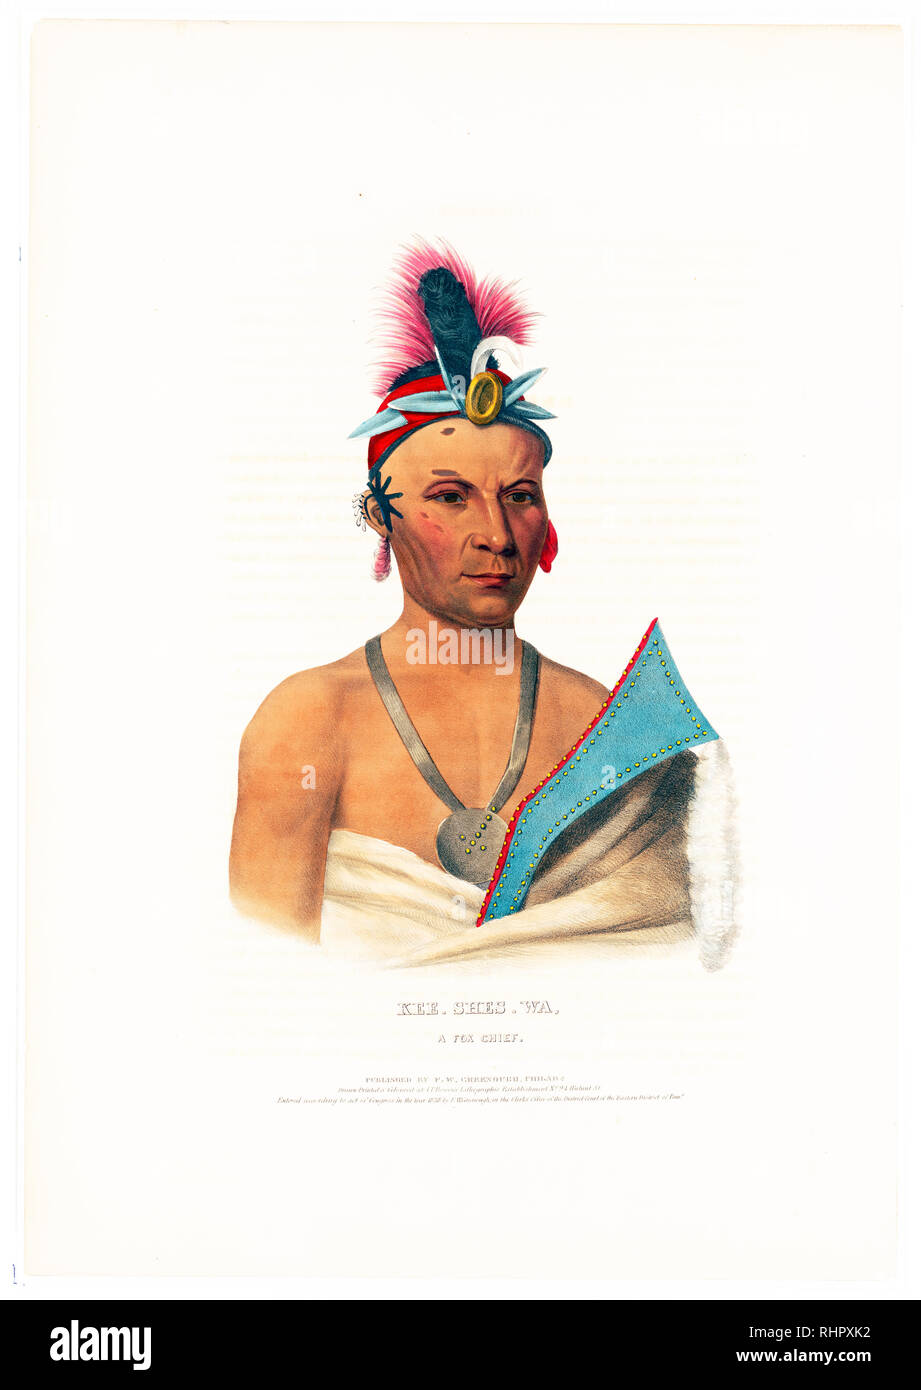 Print shows Kee-Shes-Waa, head-and-shoulders portrait, facing slightly right, wearing a small headdress and earrings. - Stock Image